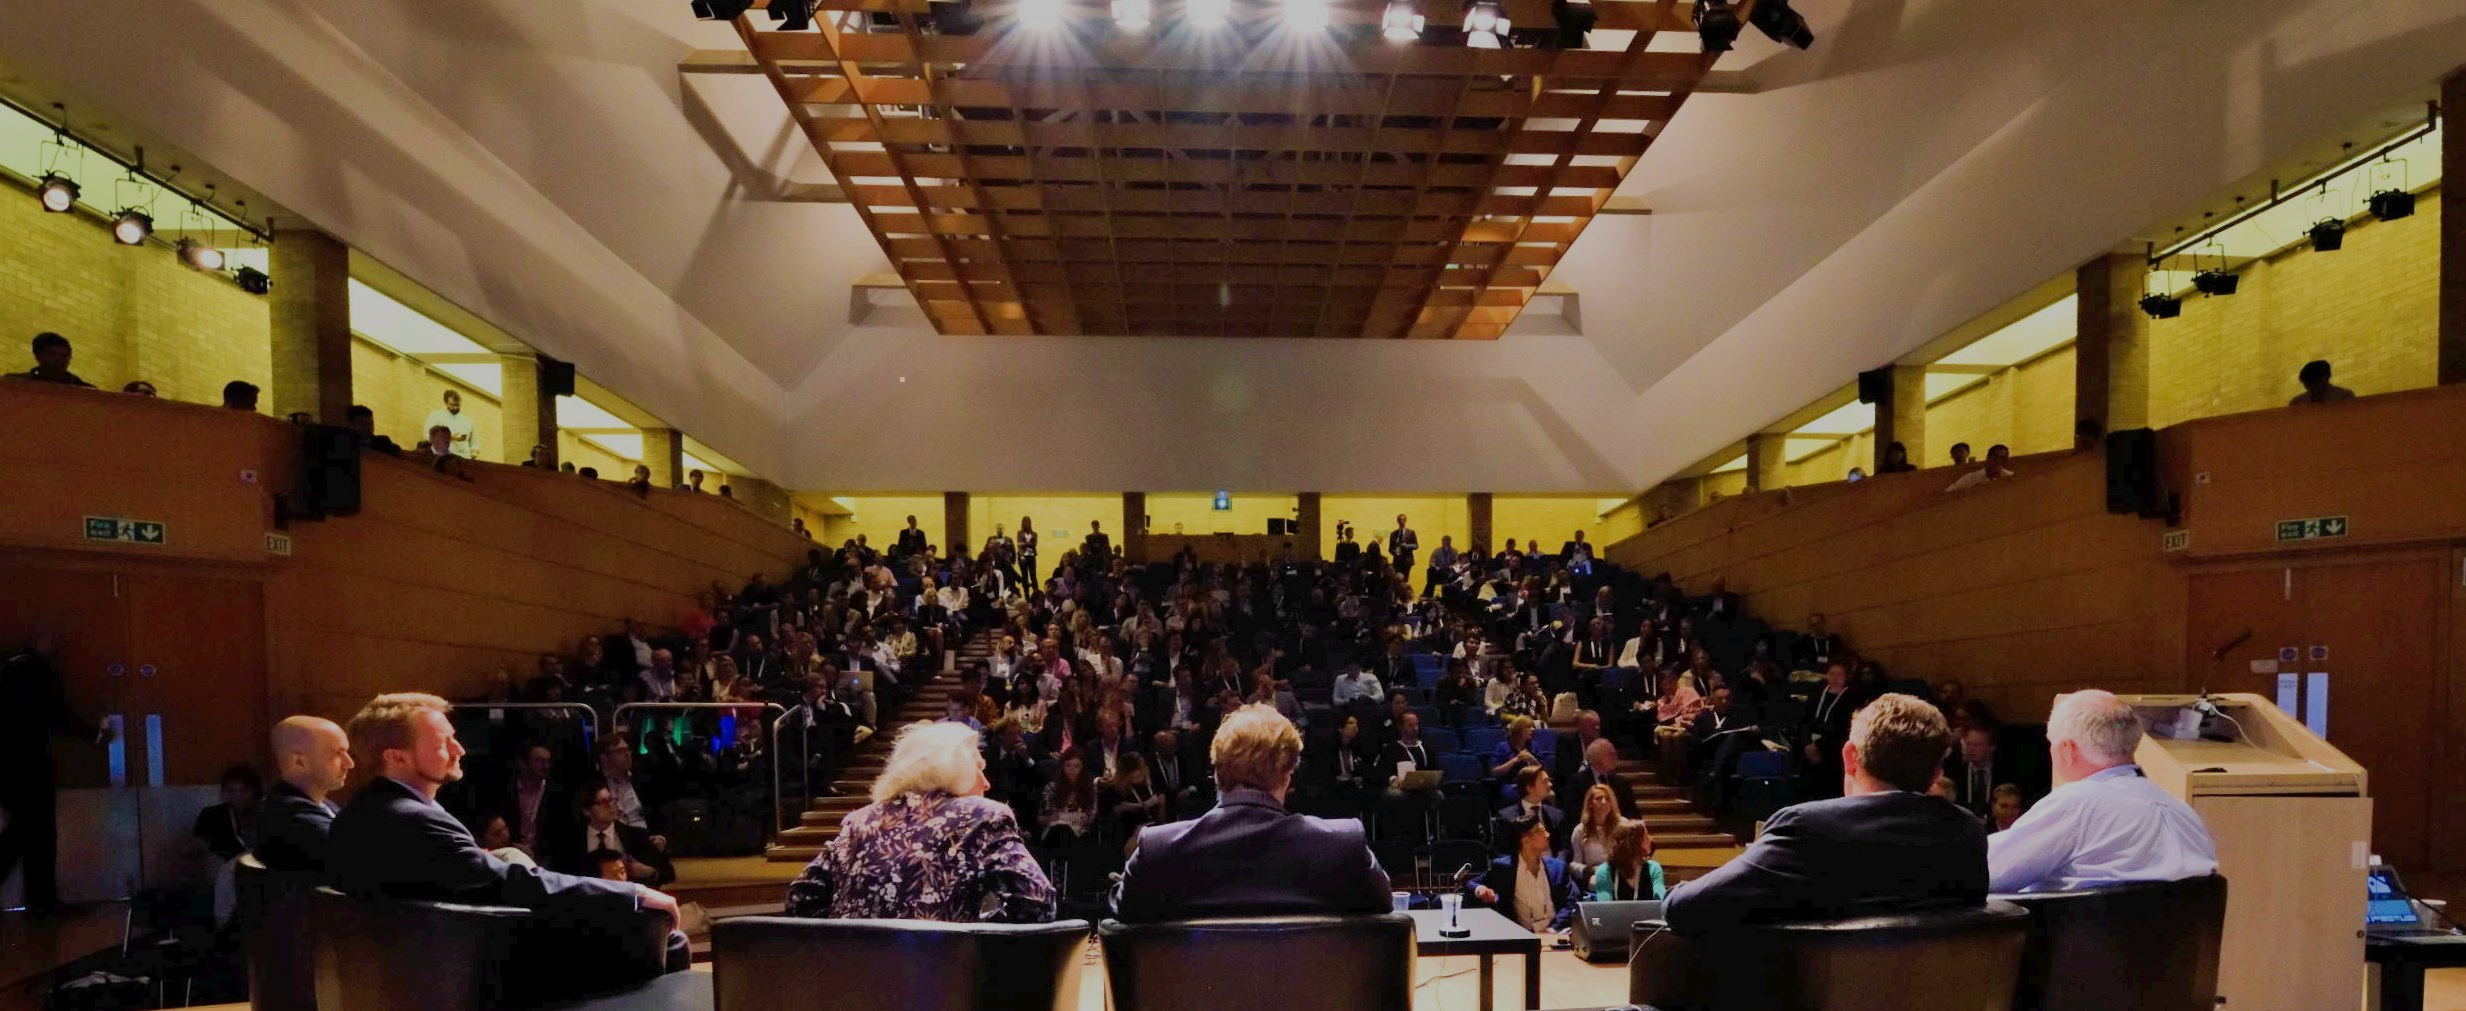 IFLC2017 – Innovation Forum 2017 – Leaders Conference – Oxford